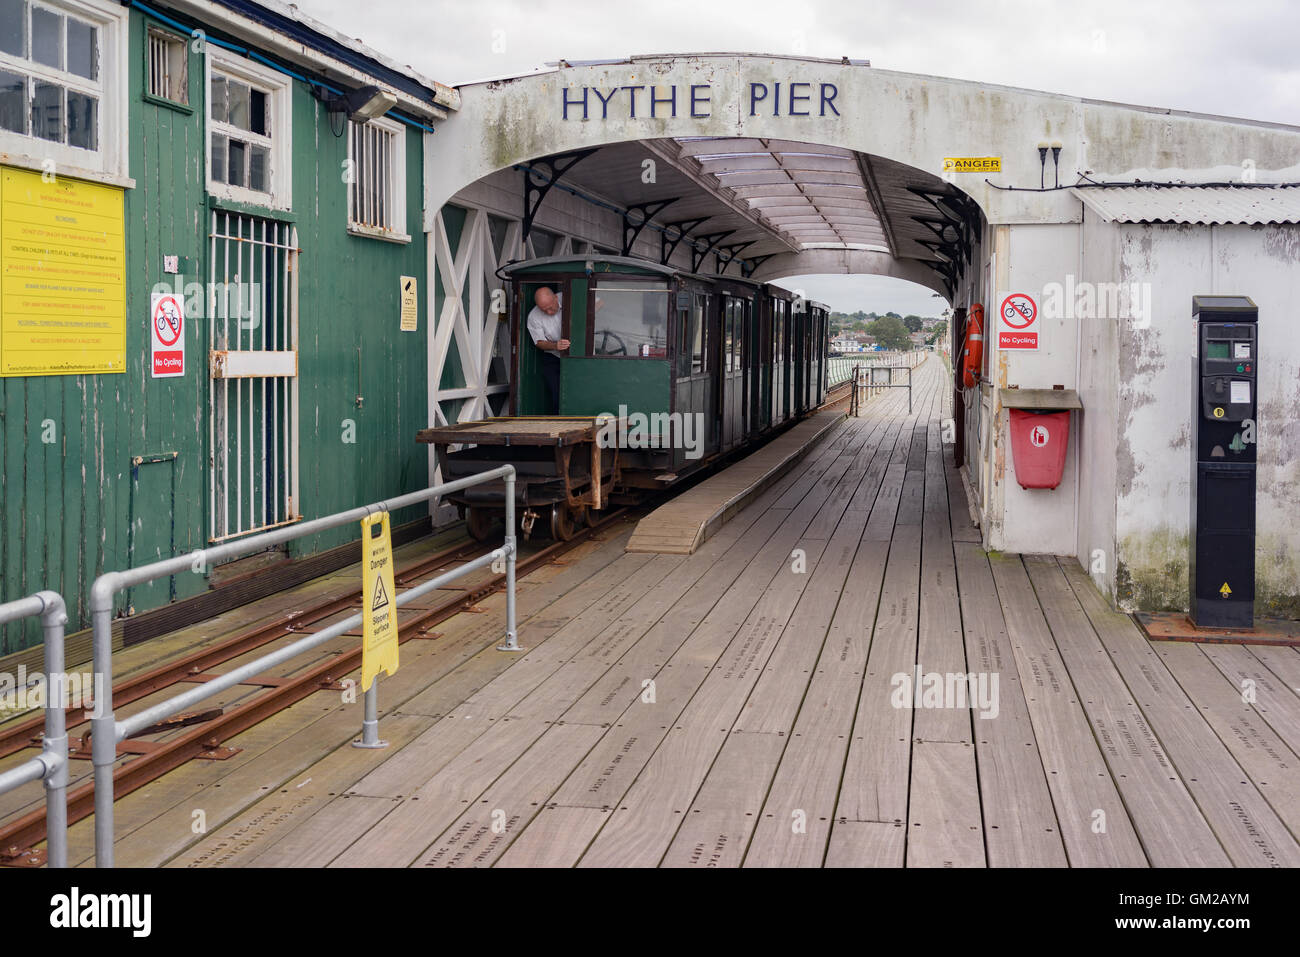 The historic Hythe Pier and railway near Southampton in Hampshire. - Stock Image